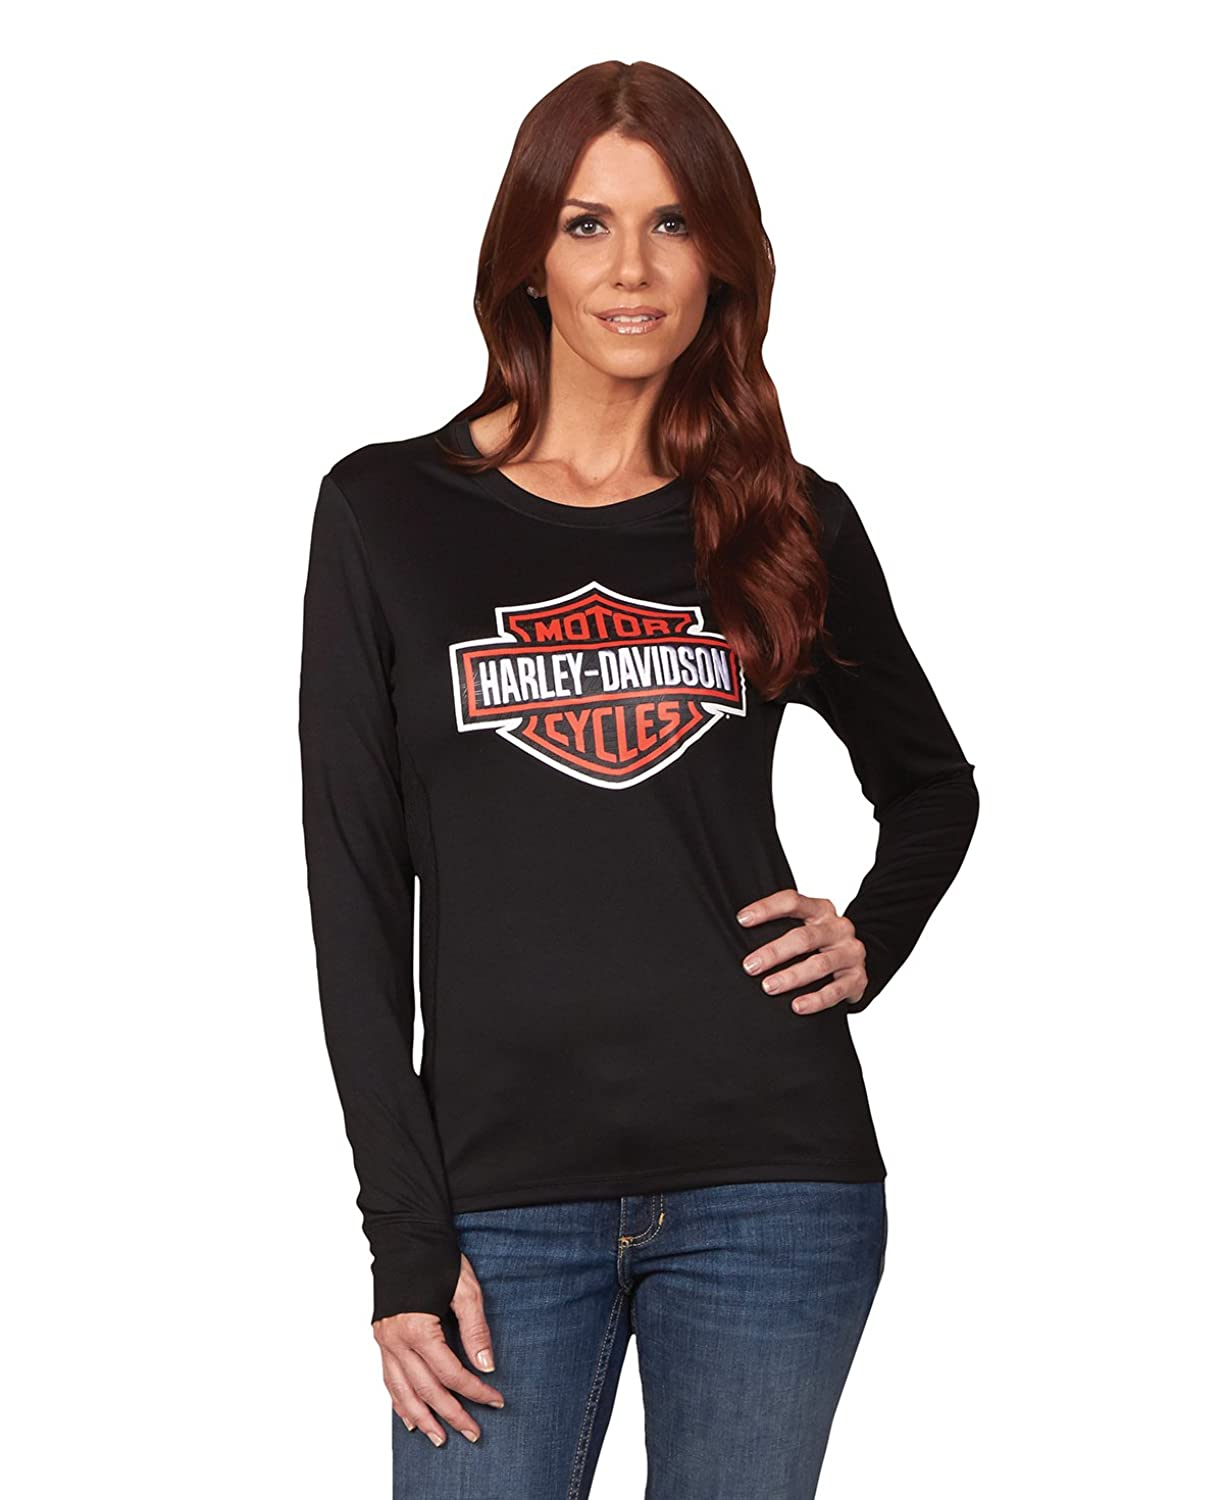 Harley-Davidson Womens Lady B&S Synthetic Shirt womens